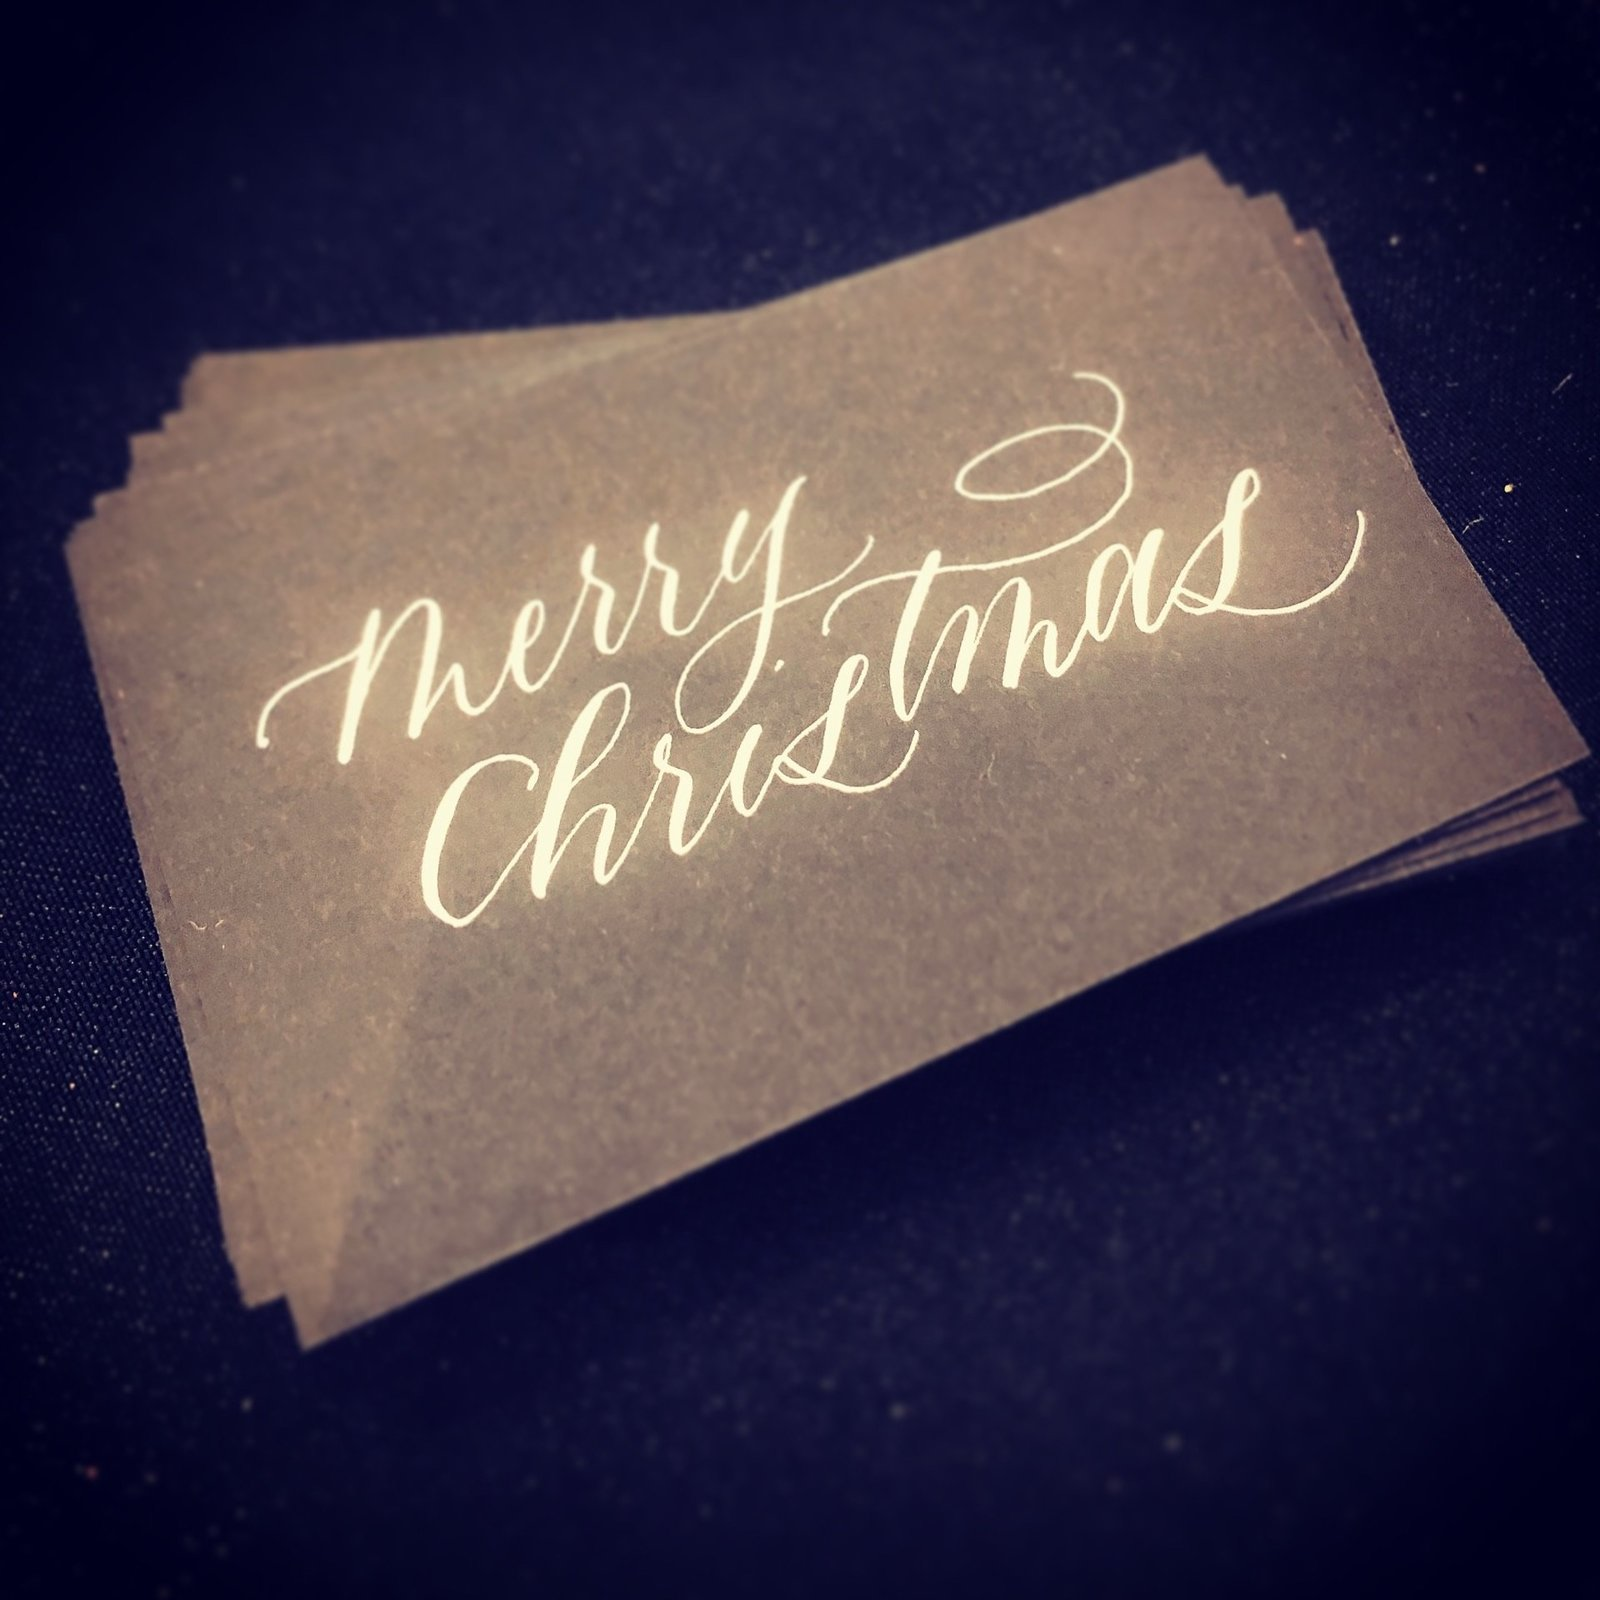 jomygoodness-merry-christmas-white-calligraphy-on-black-saks